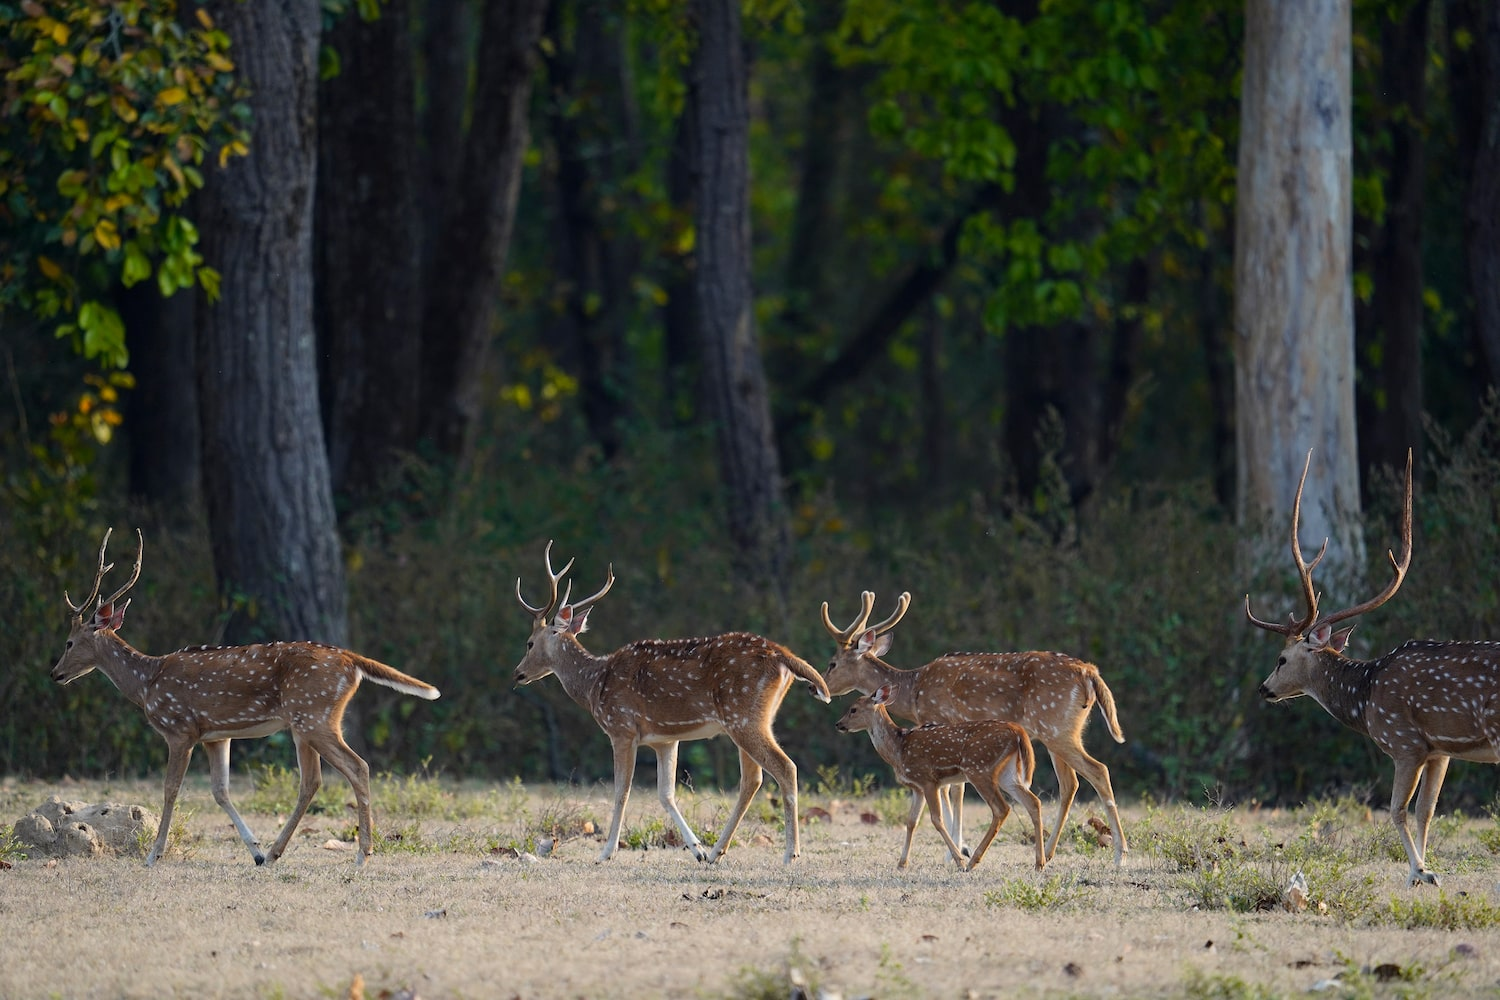 deer-group-moving-in-forest-alpha-7III